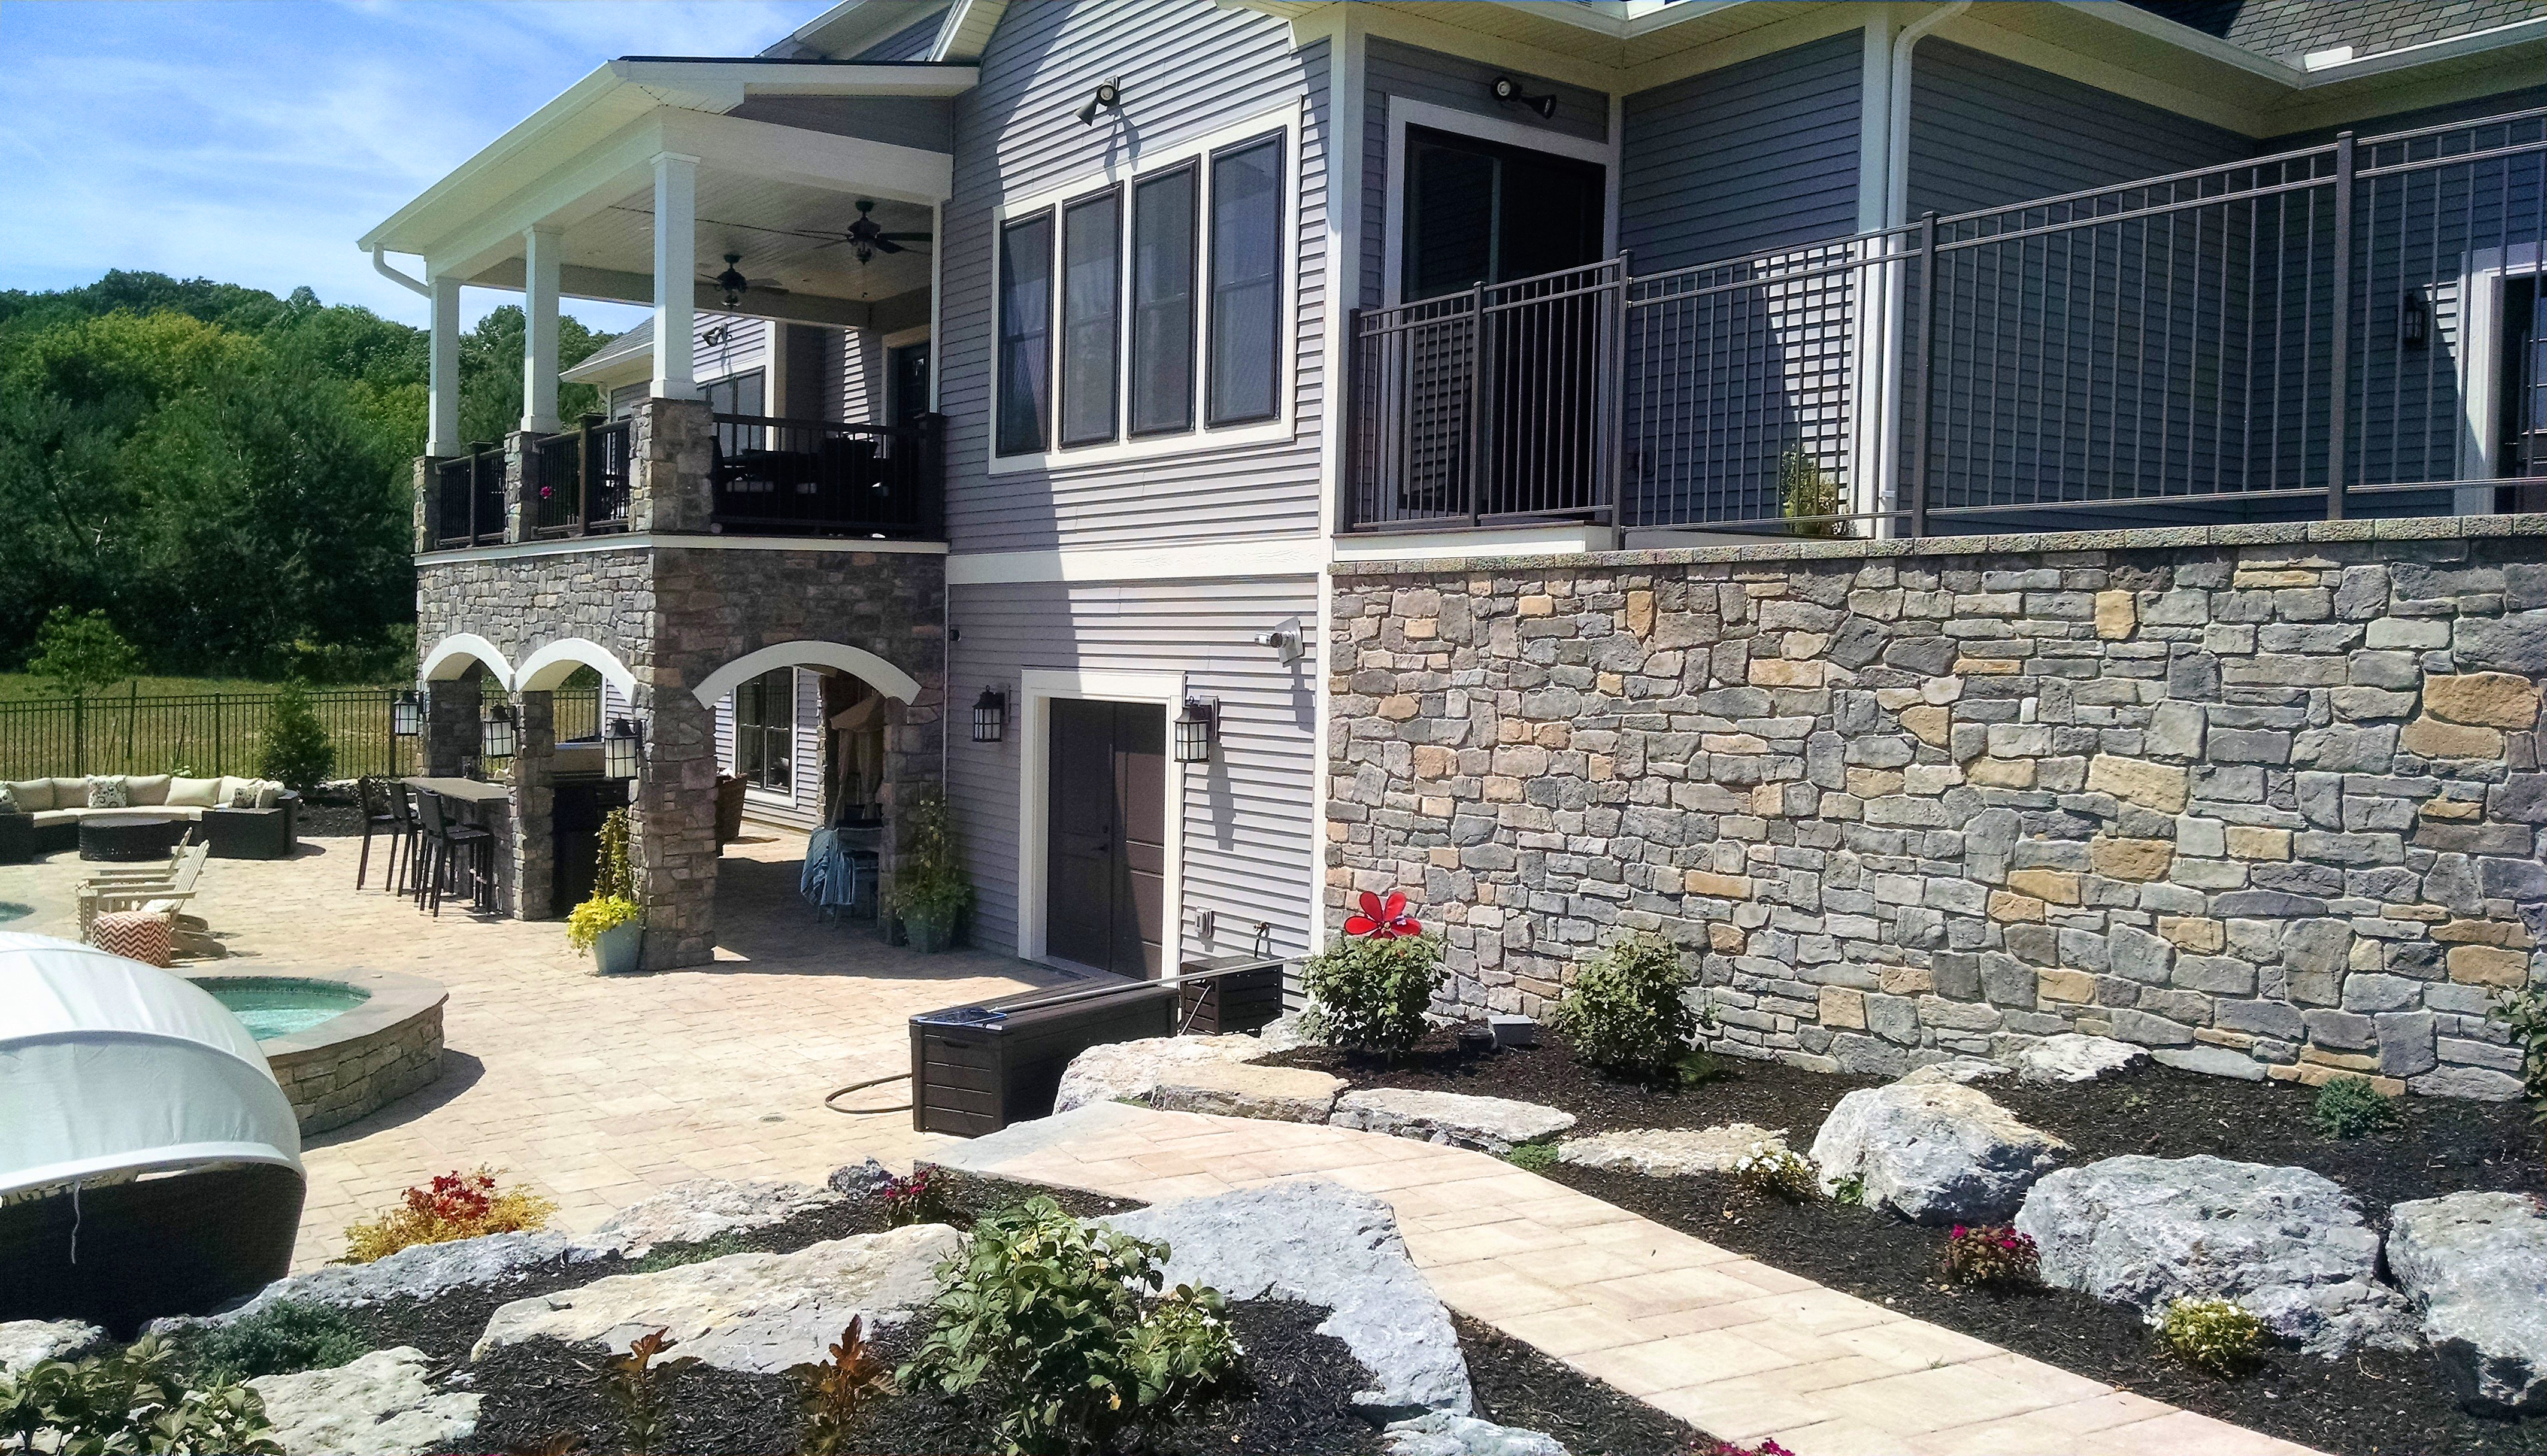 Stone Veneer & Concrete Patio